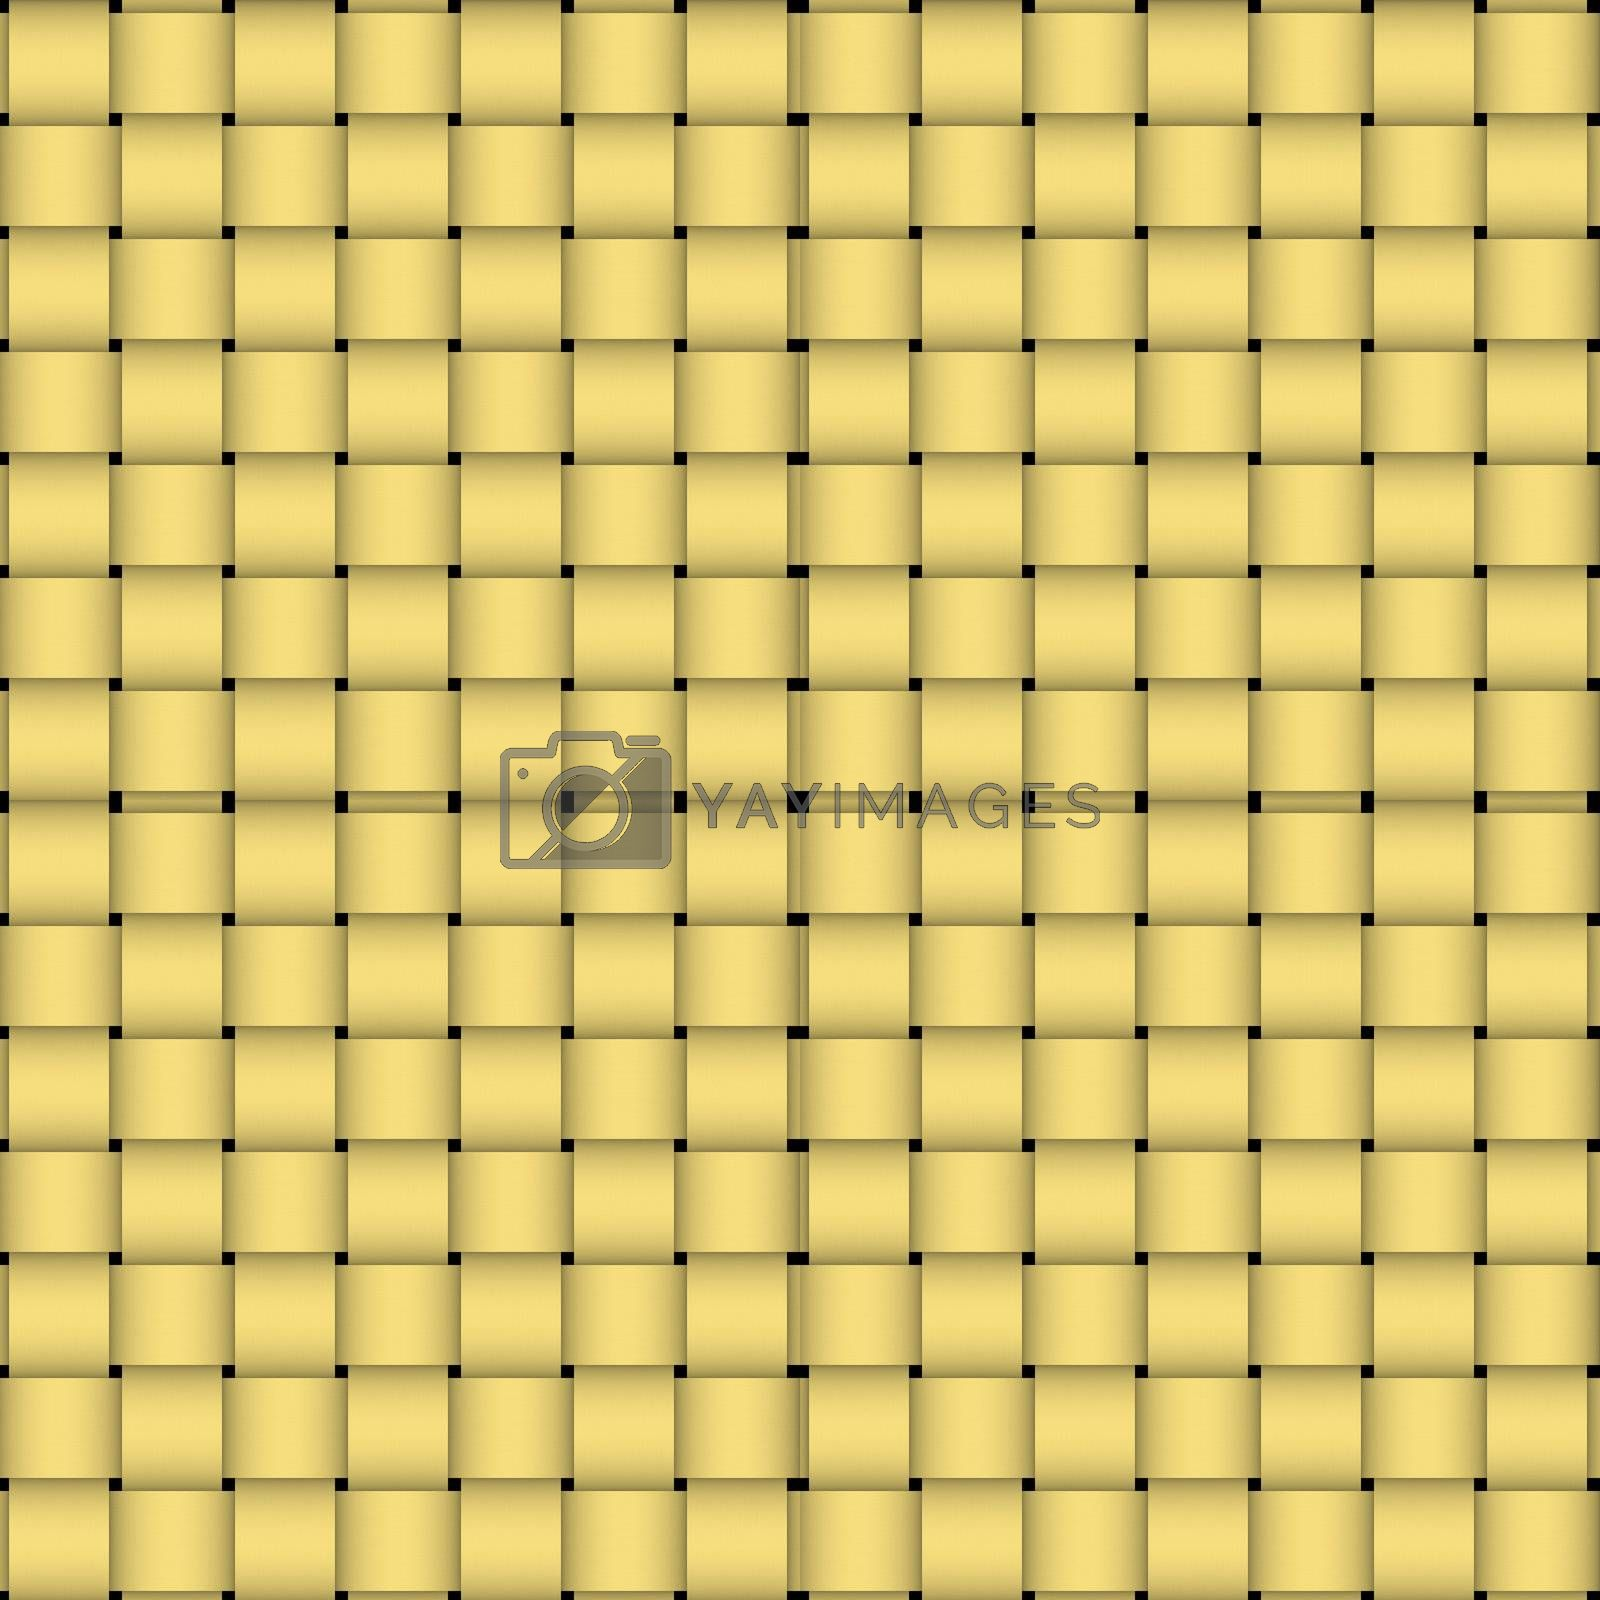 A high-resolution woven basket or wicker texture that can be used as a pattern and tiled seamlessly.